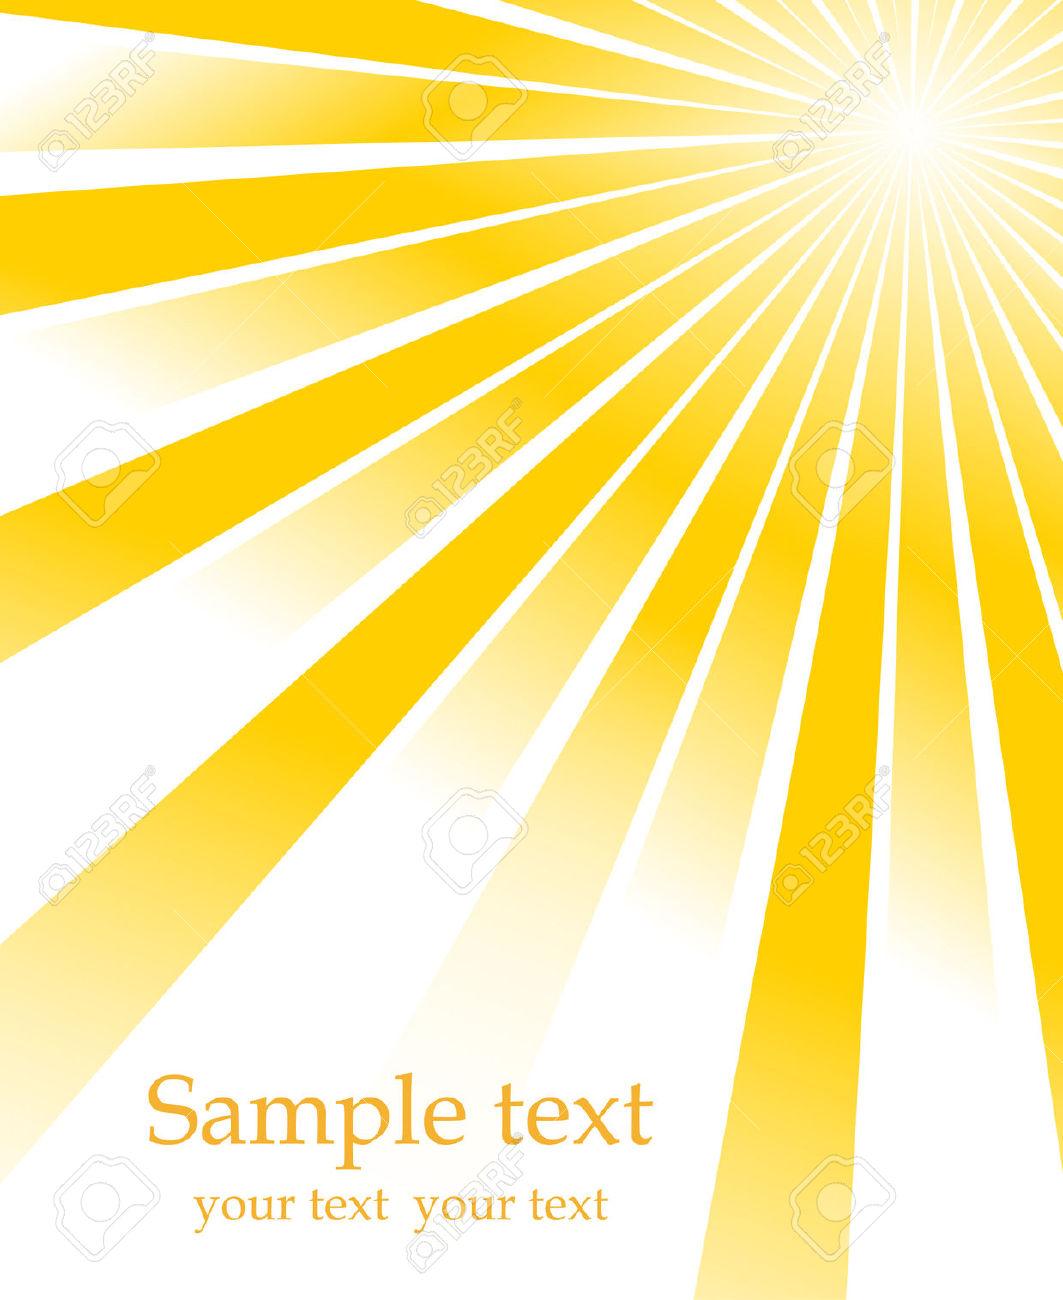 Sunburst Vector Free Download